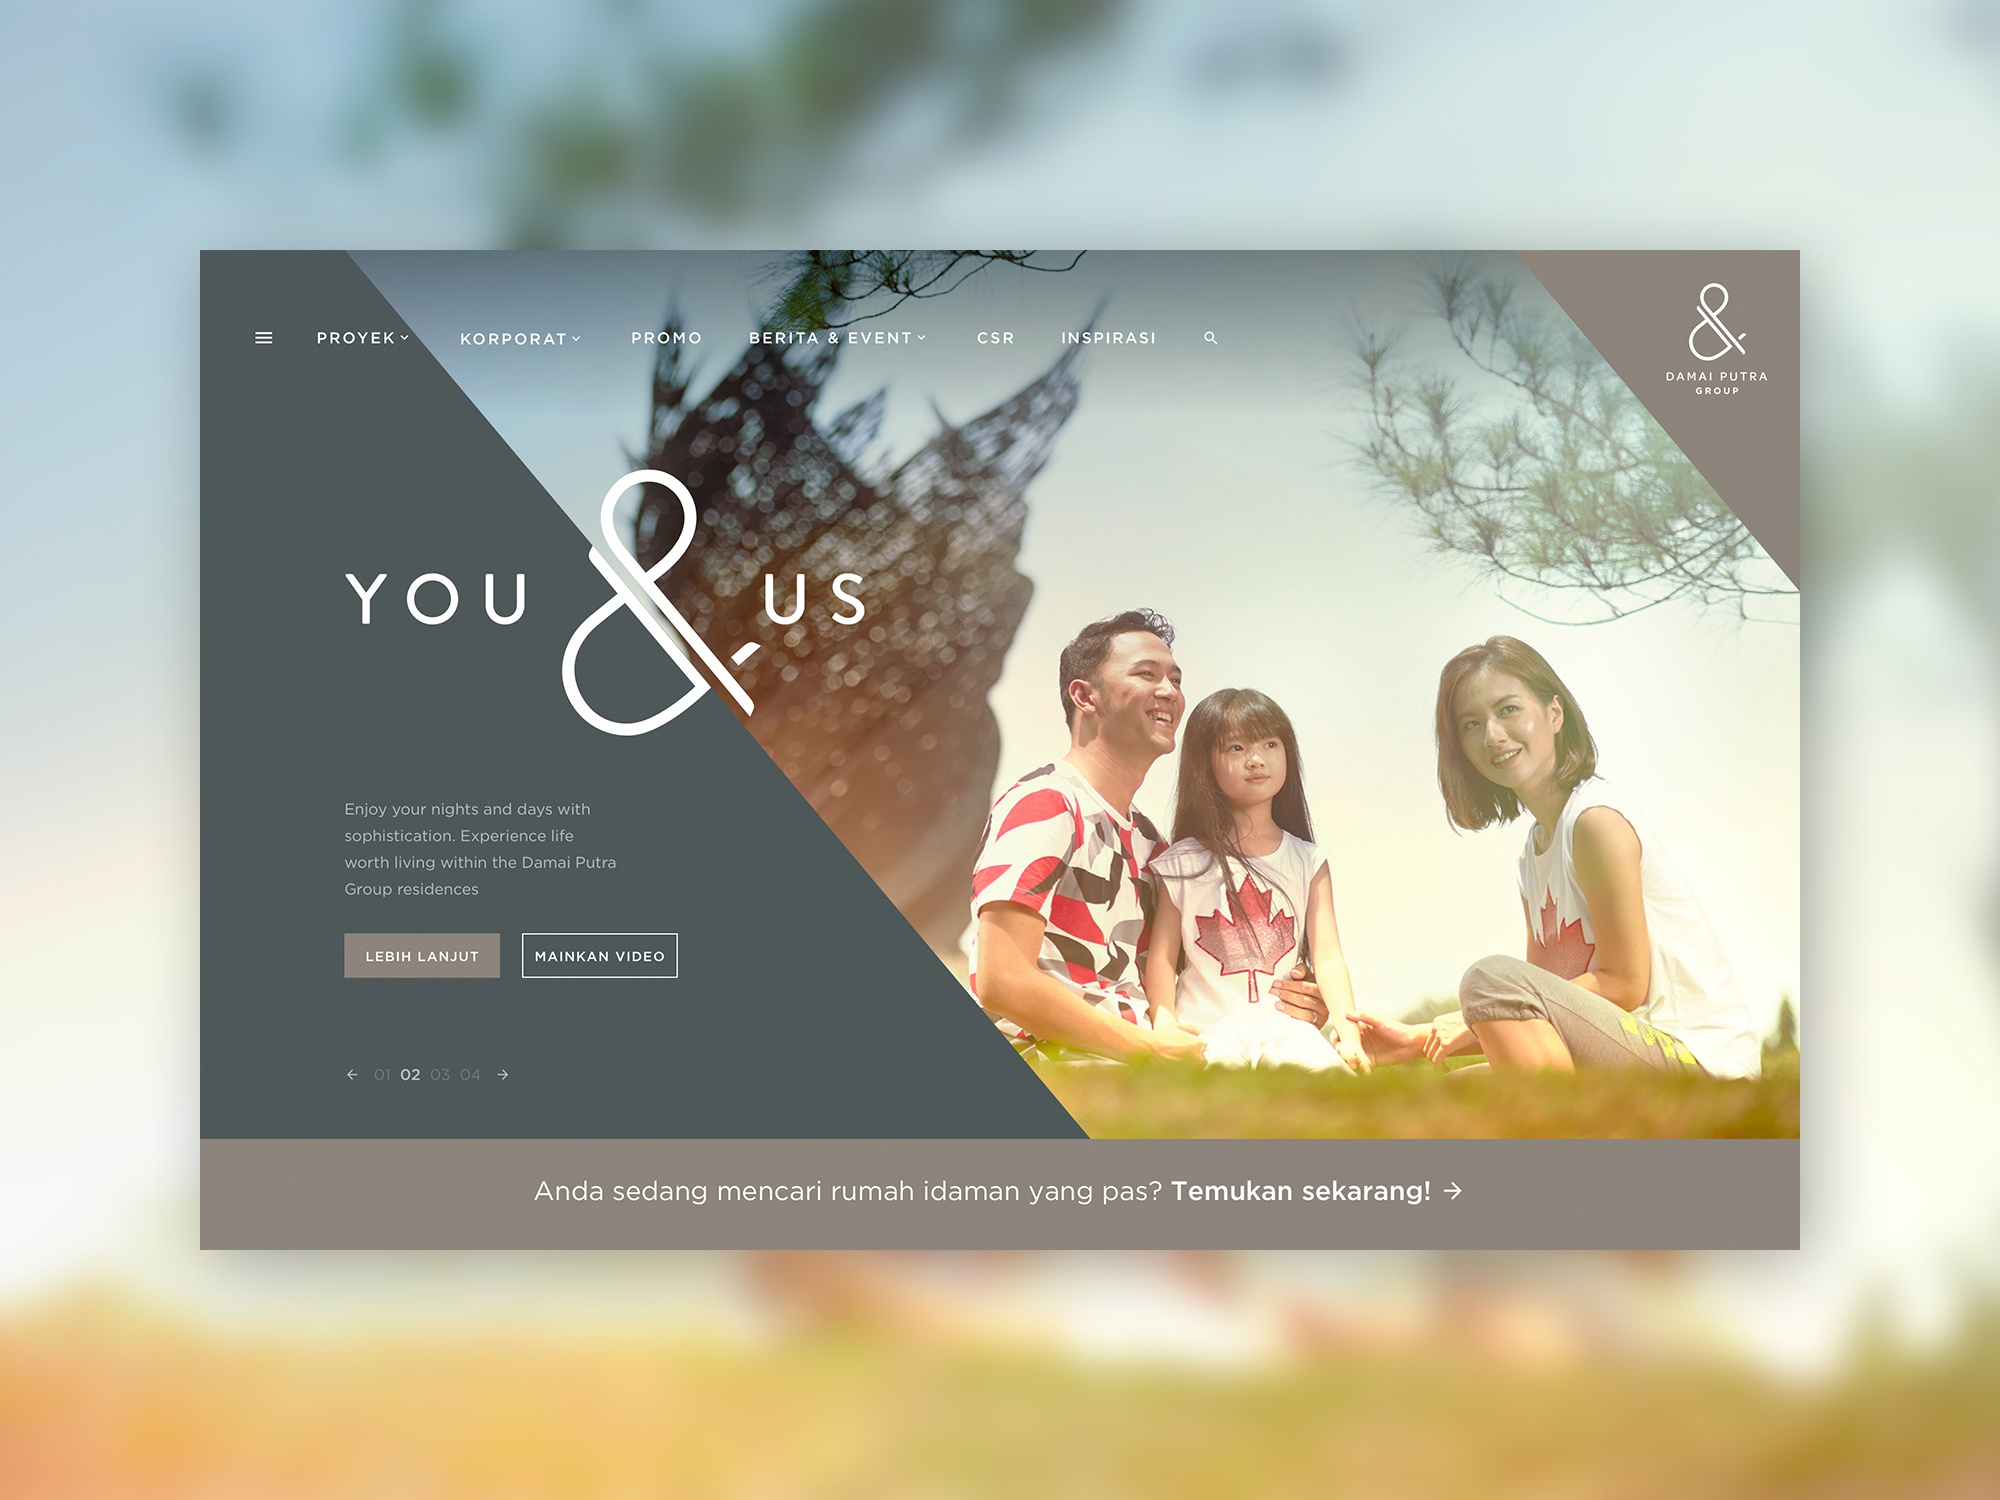 Damai putra group dribbble